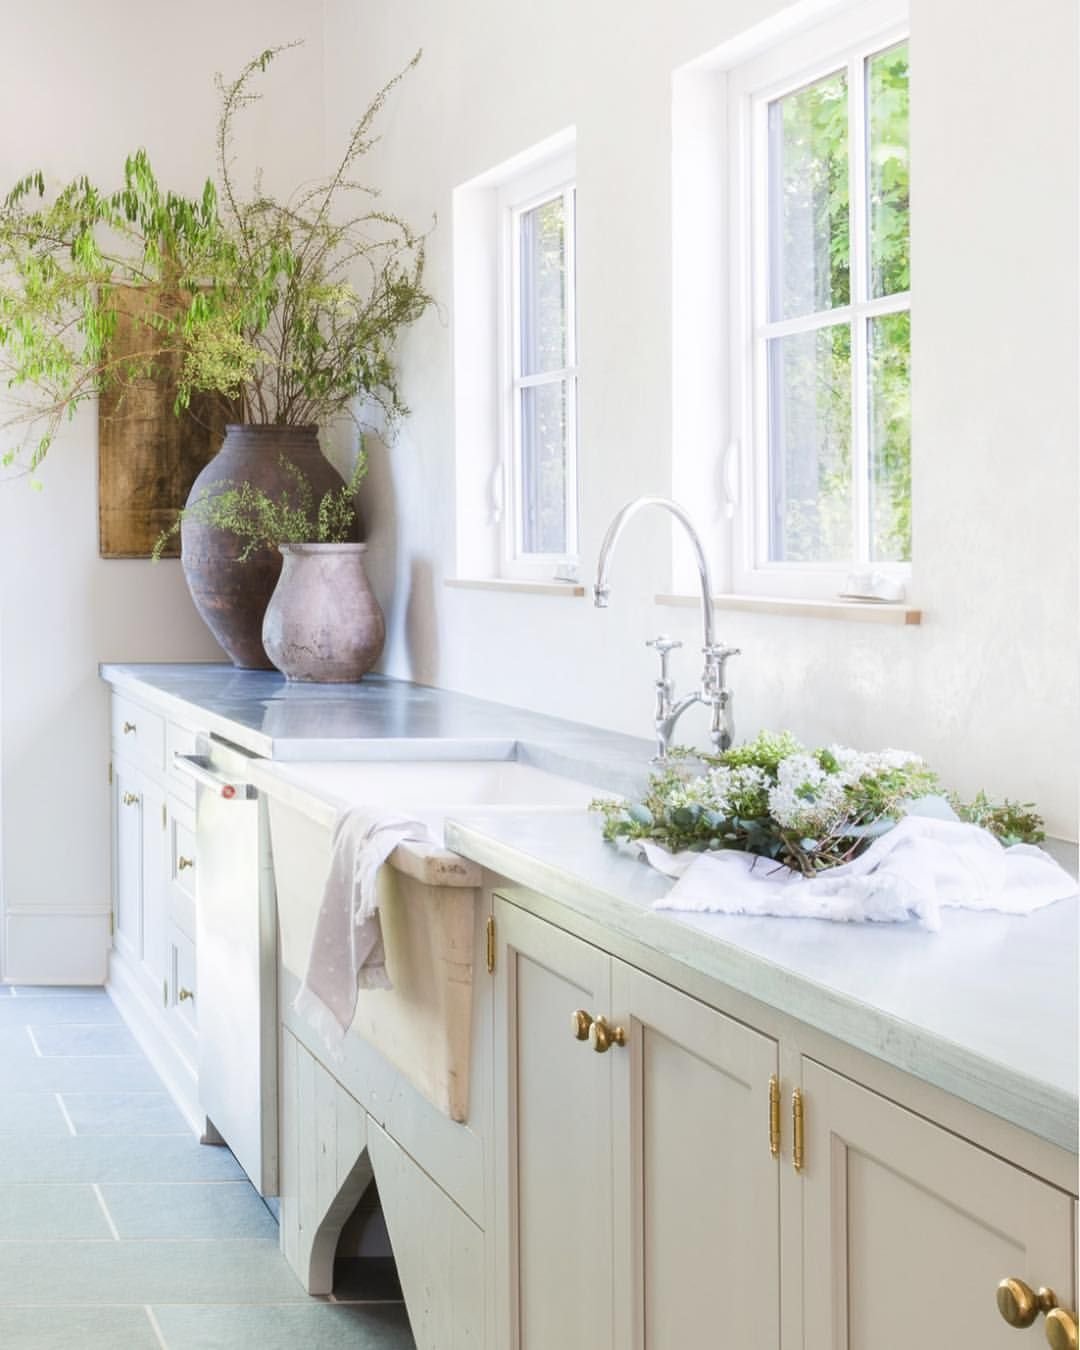 European Style Kitchen Remodeling Ideas: European Inspired Kitchen Or Laundry Room With Ivory